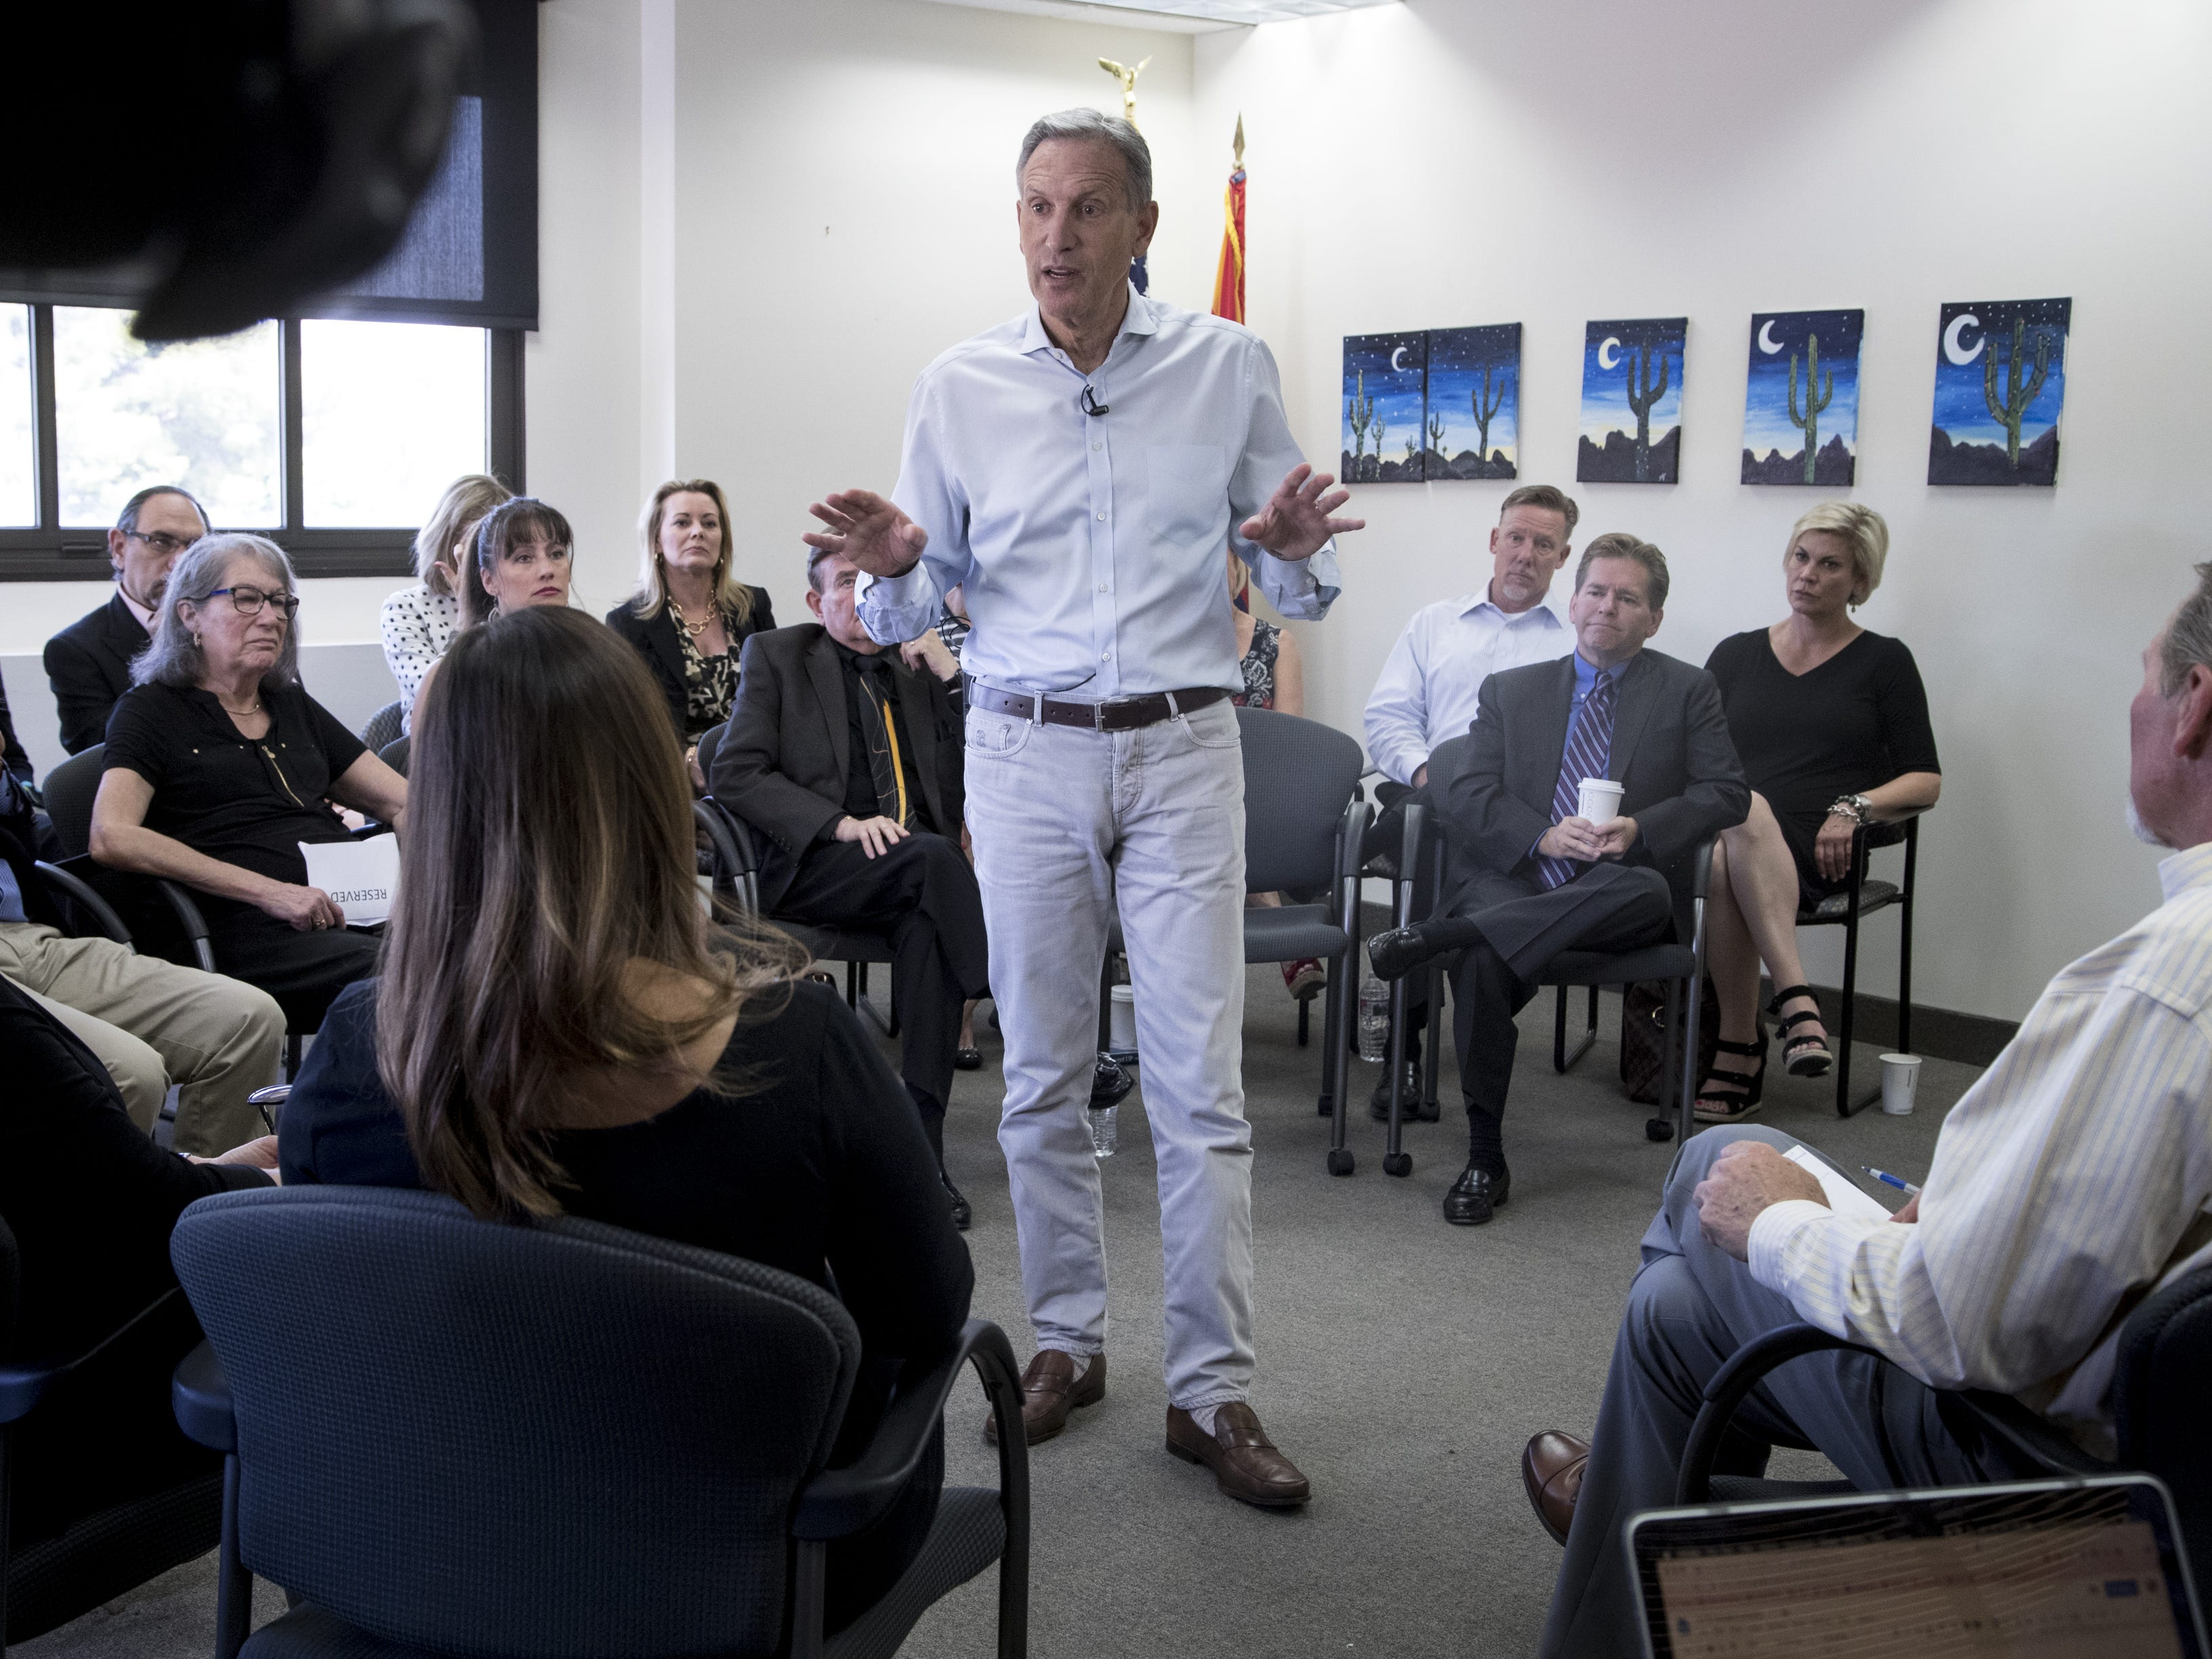 Howard Schultz talks during a town hall meeting on April 15, 2019, at the Scottsdale Area Chamber of Commerce in Scottsdale.